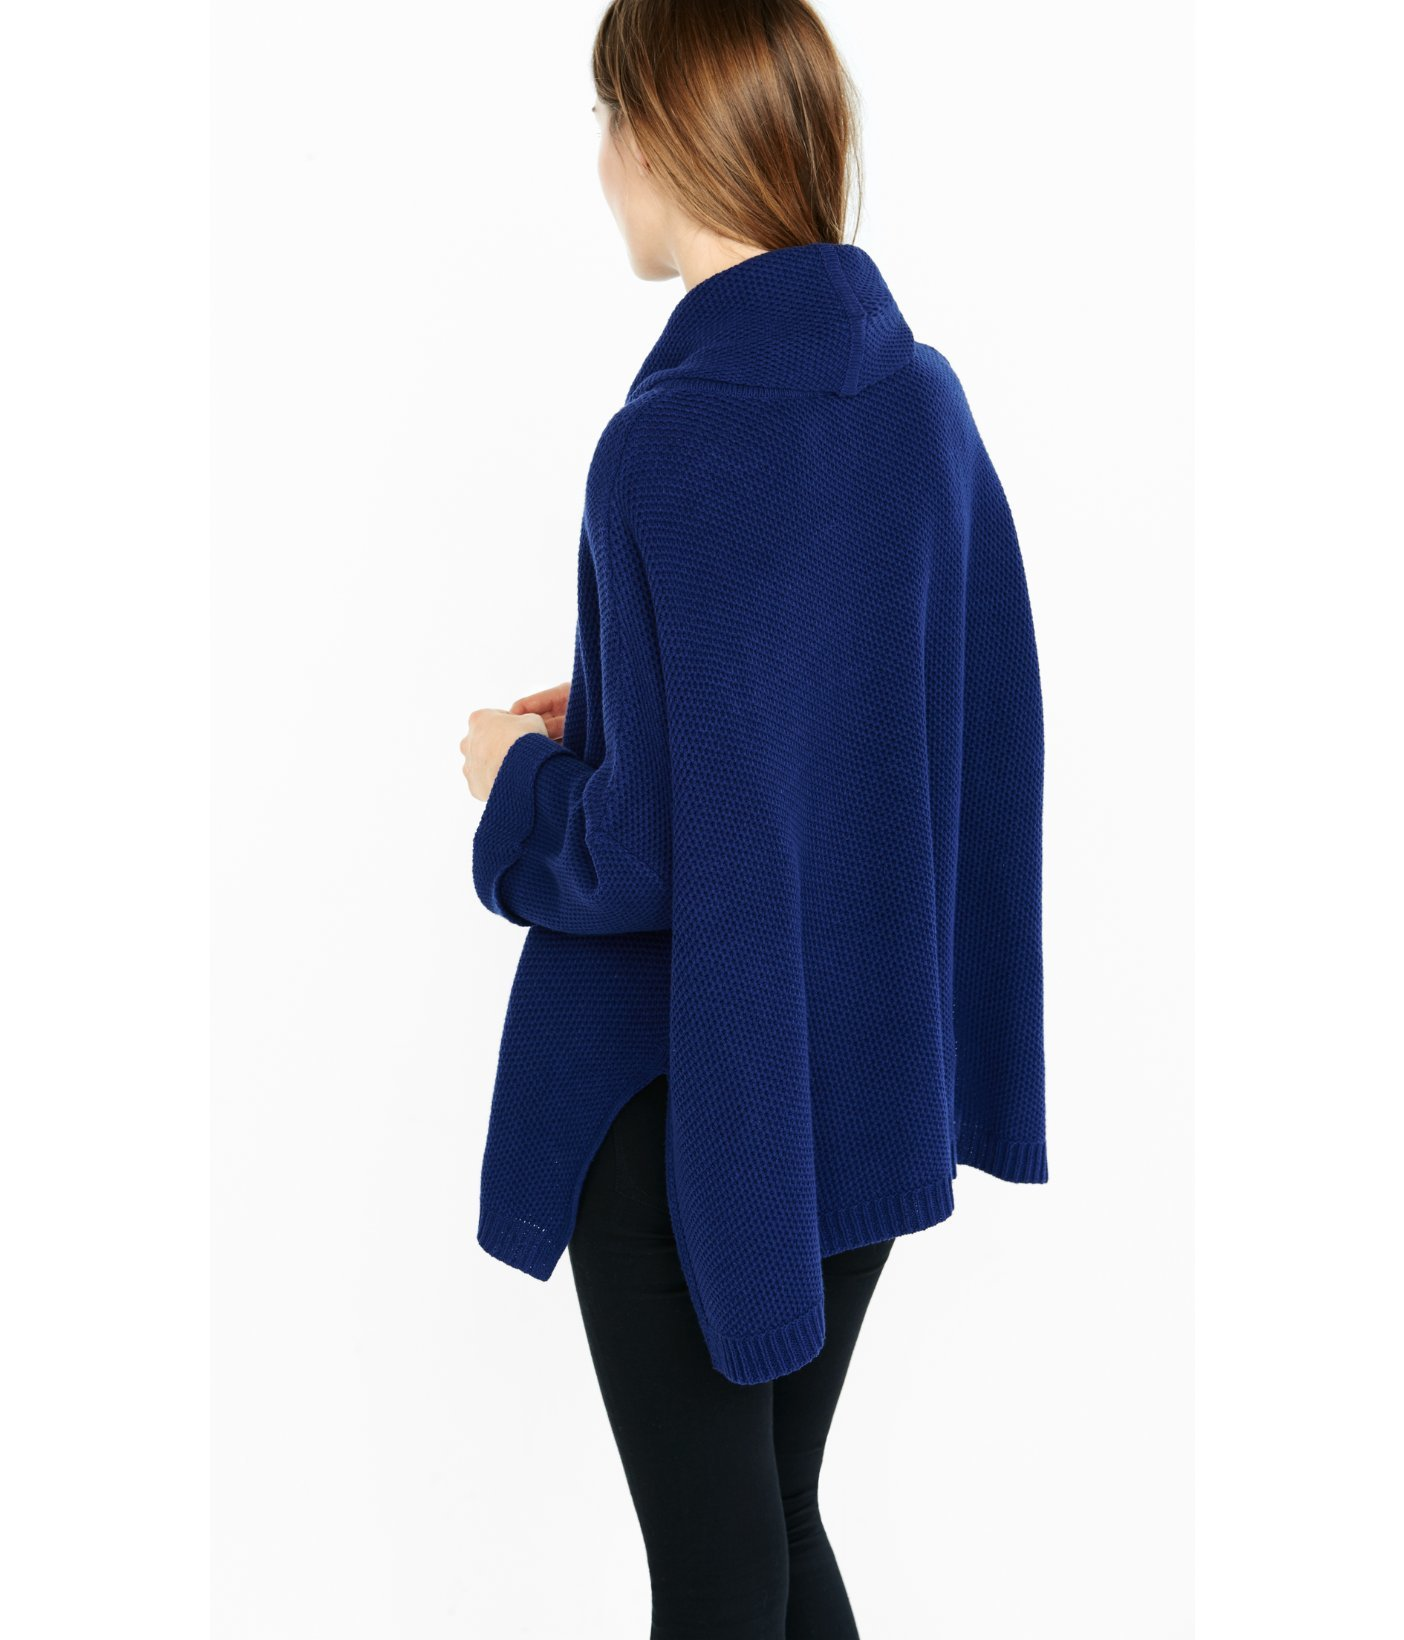 Express Cowl Neck Boxy Sweater in Blue | Lyst